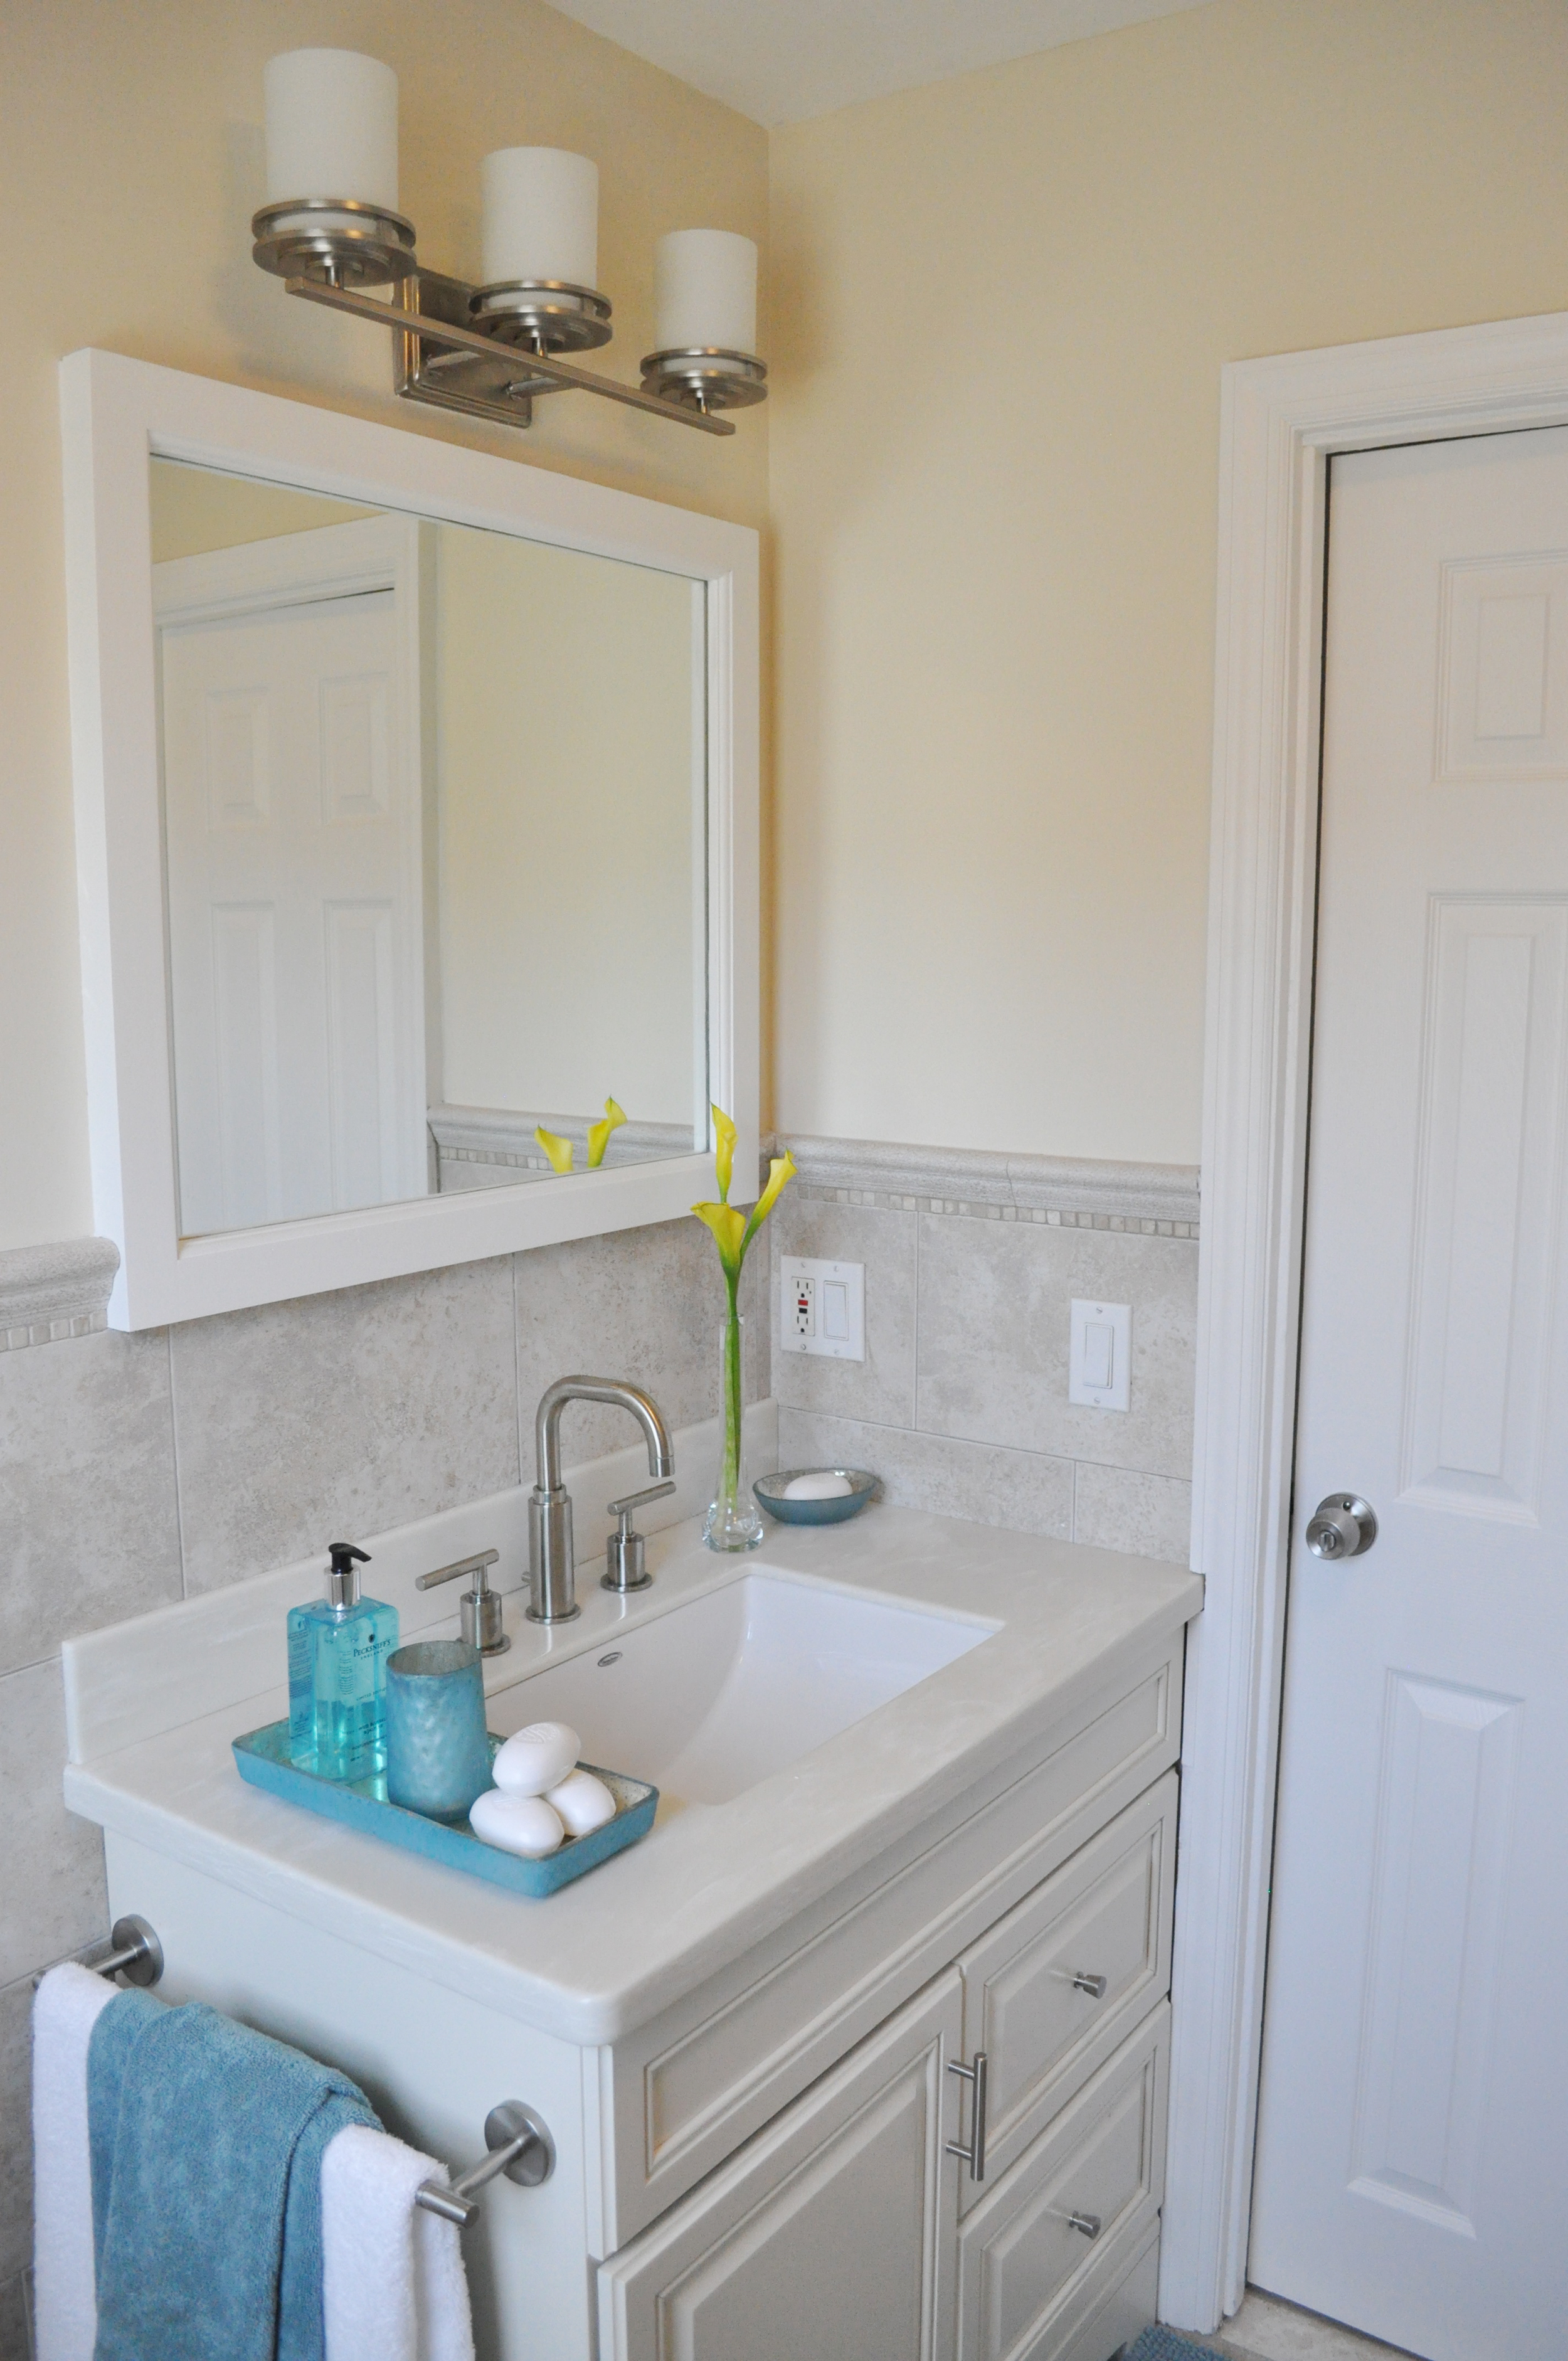 Kim Annick Mitchell_Production Designer_HGTV_Buying and Seling with The Property Brothers_Season 3_Episode 315_Main Bathroom.jpg